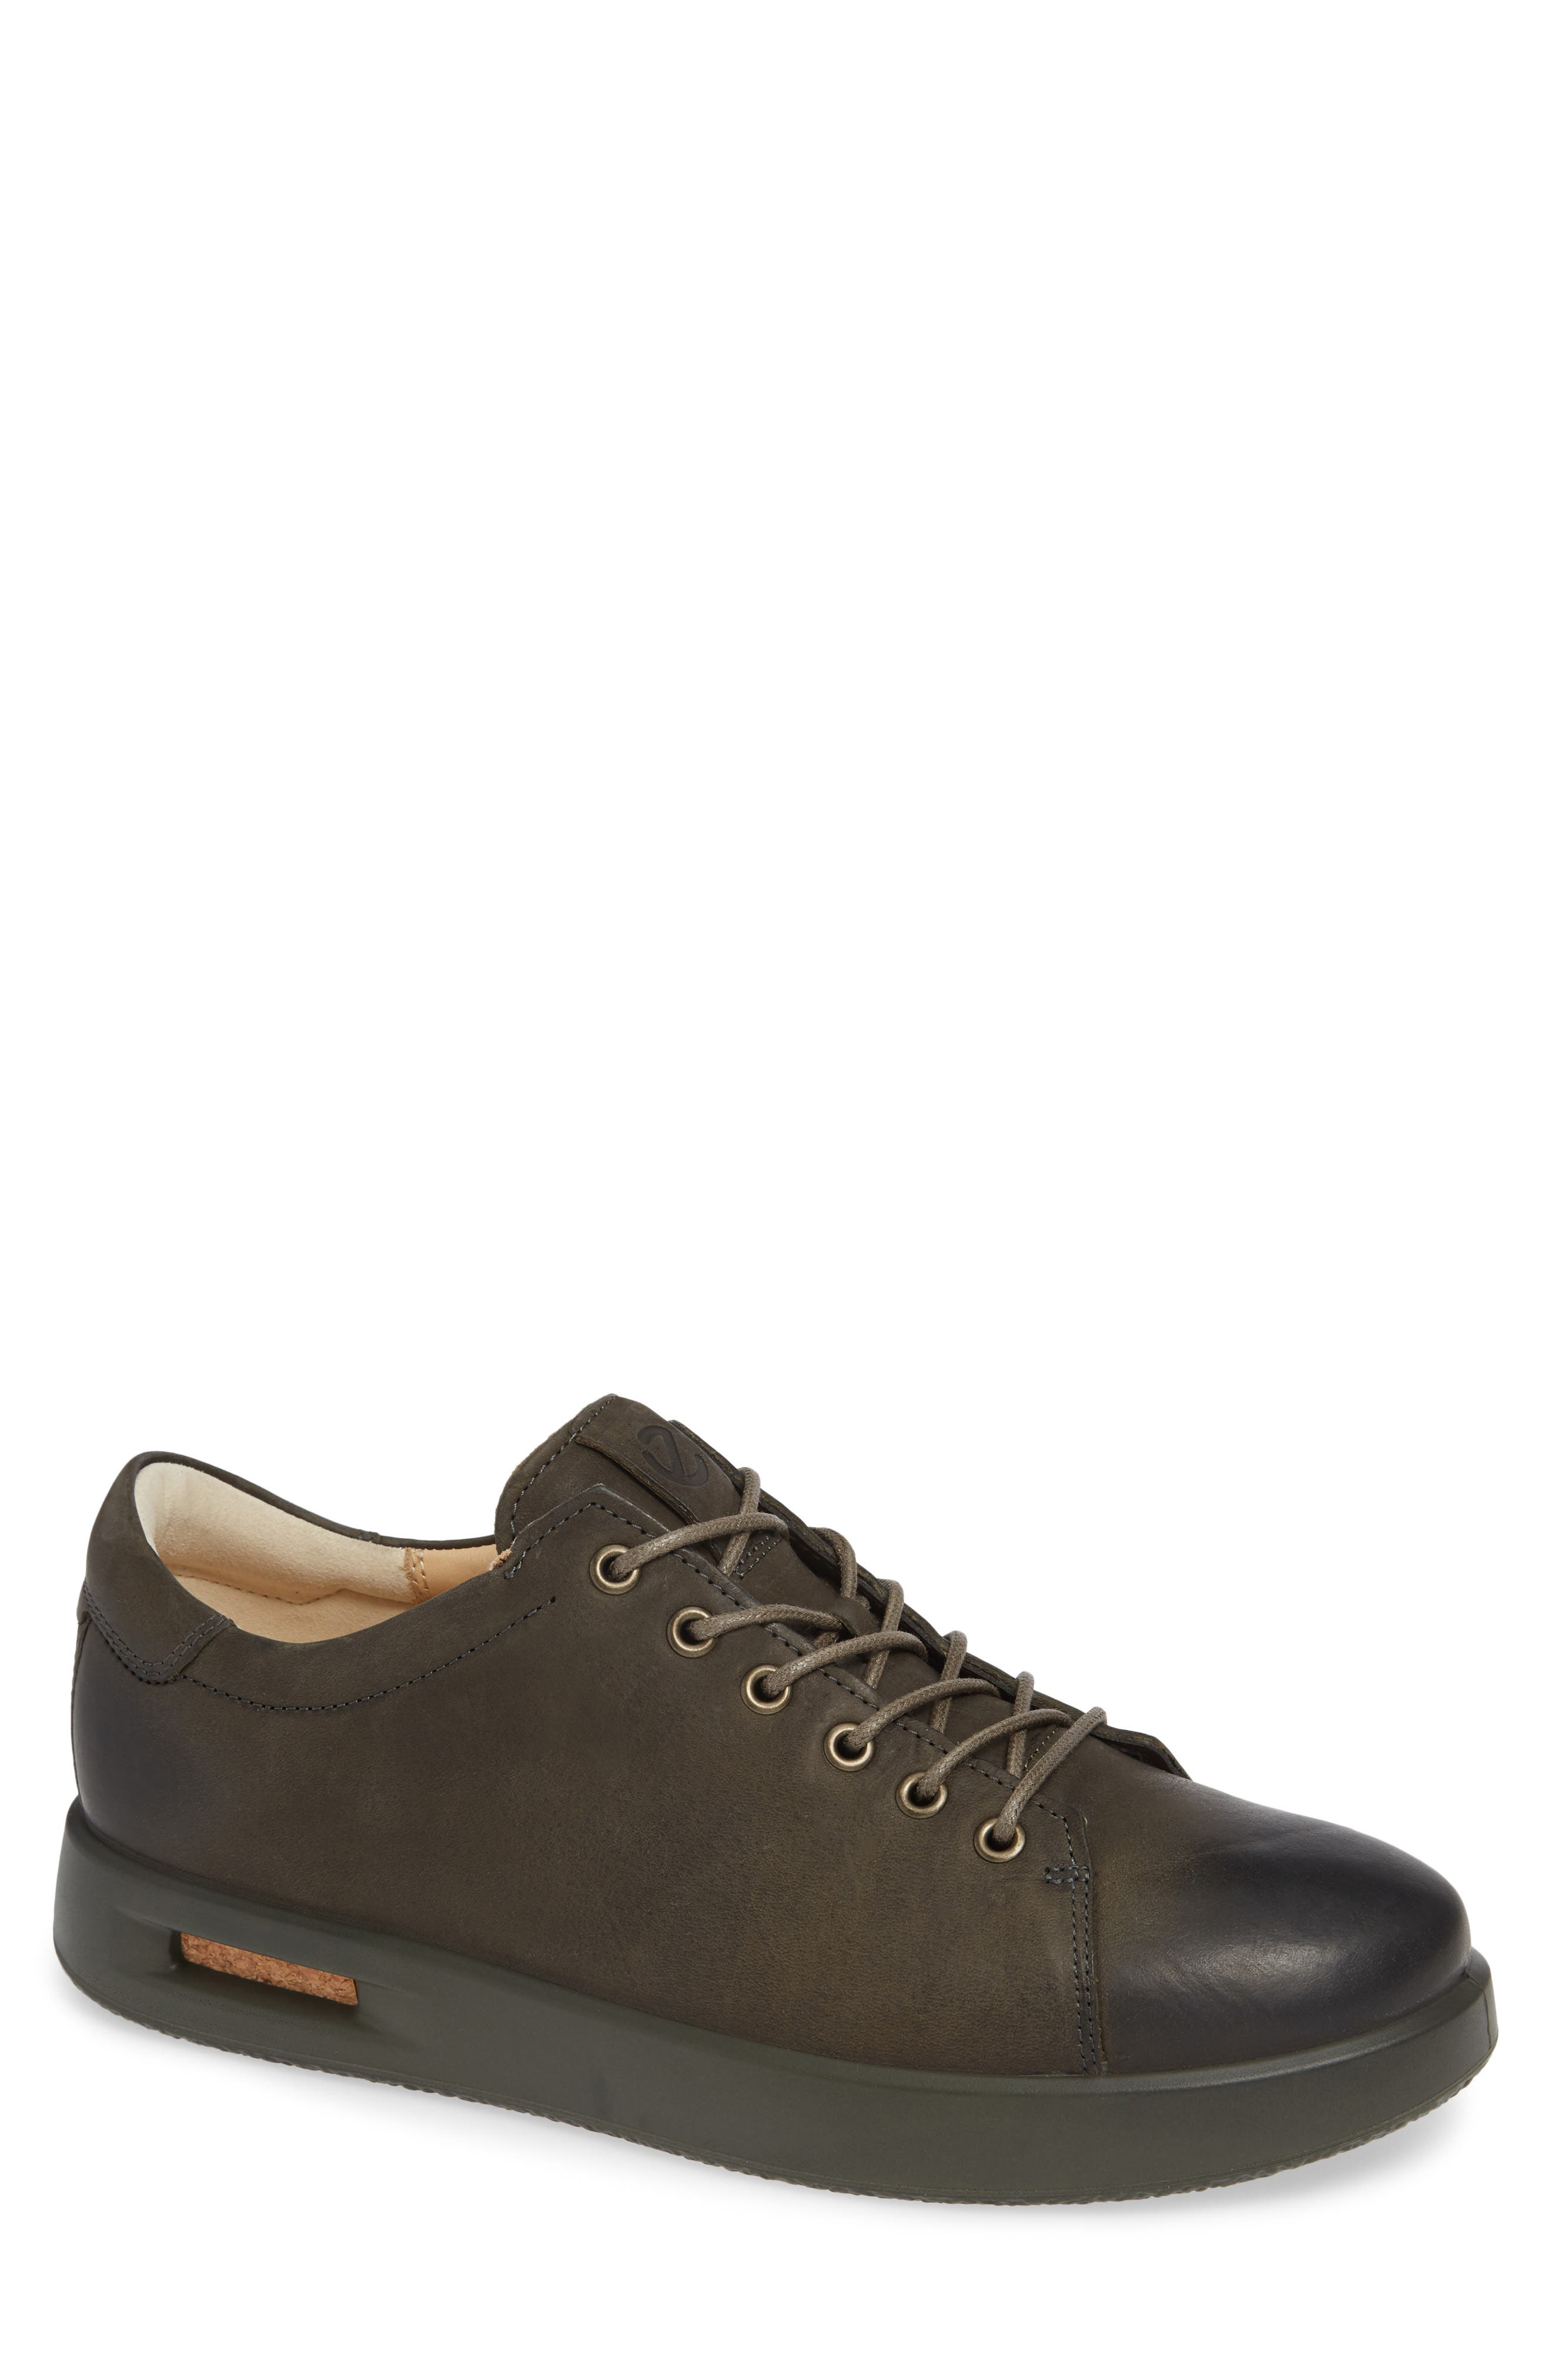 Corksphere 1 Sneaker,                         Main,                         color, TARMAC LEATHER